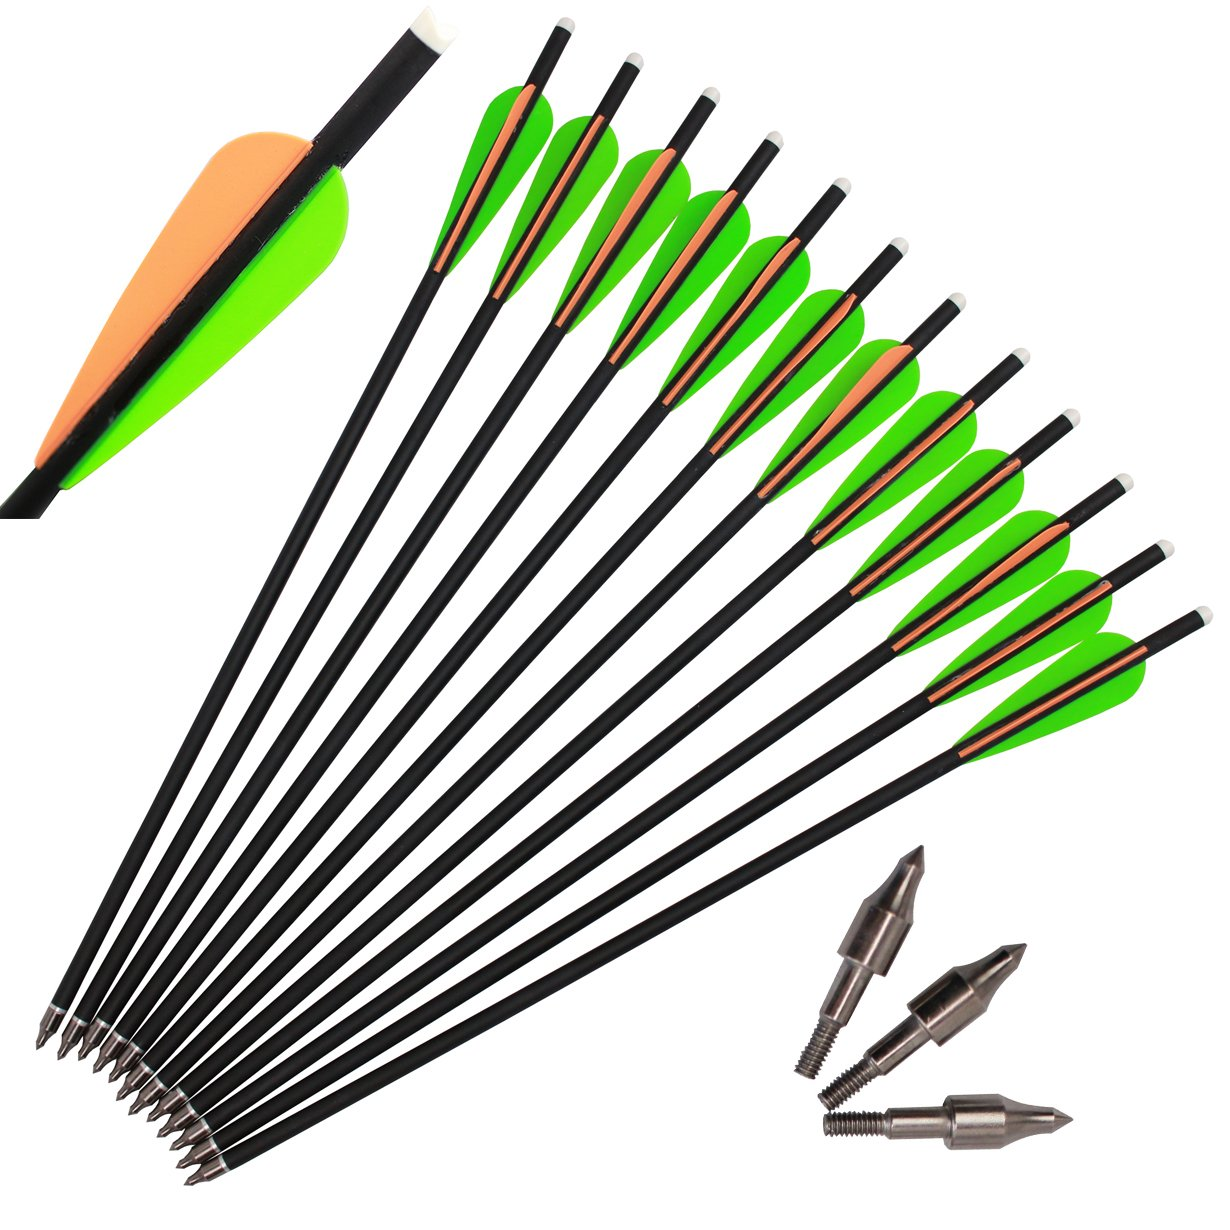 kaimei Archery Carbon Arrow 20 Inch Crossbow Bolts Arrow With 4 Inch vanes for Competition Practice Hunting (Pack of 12)